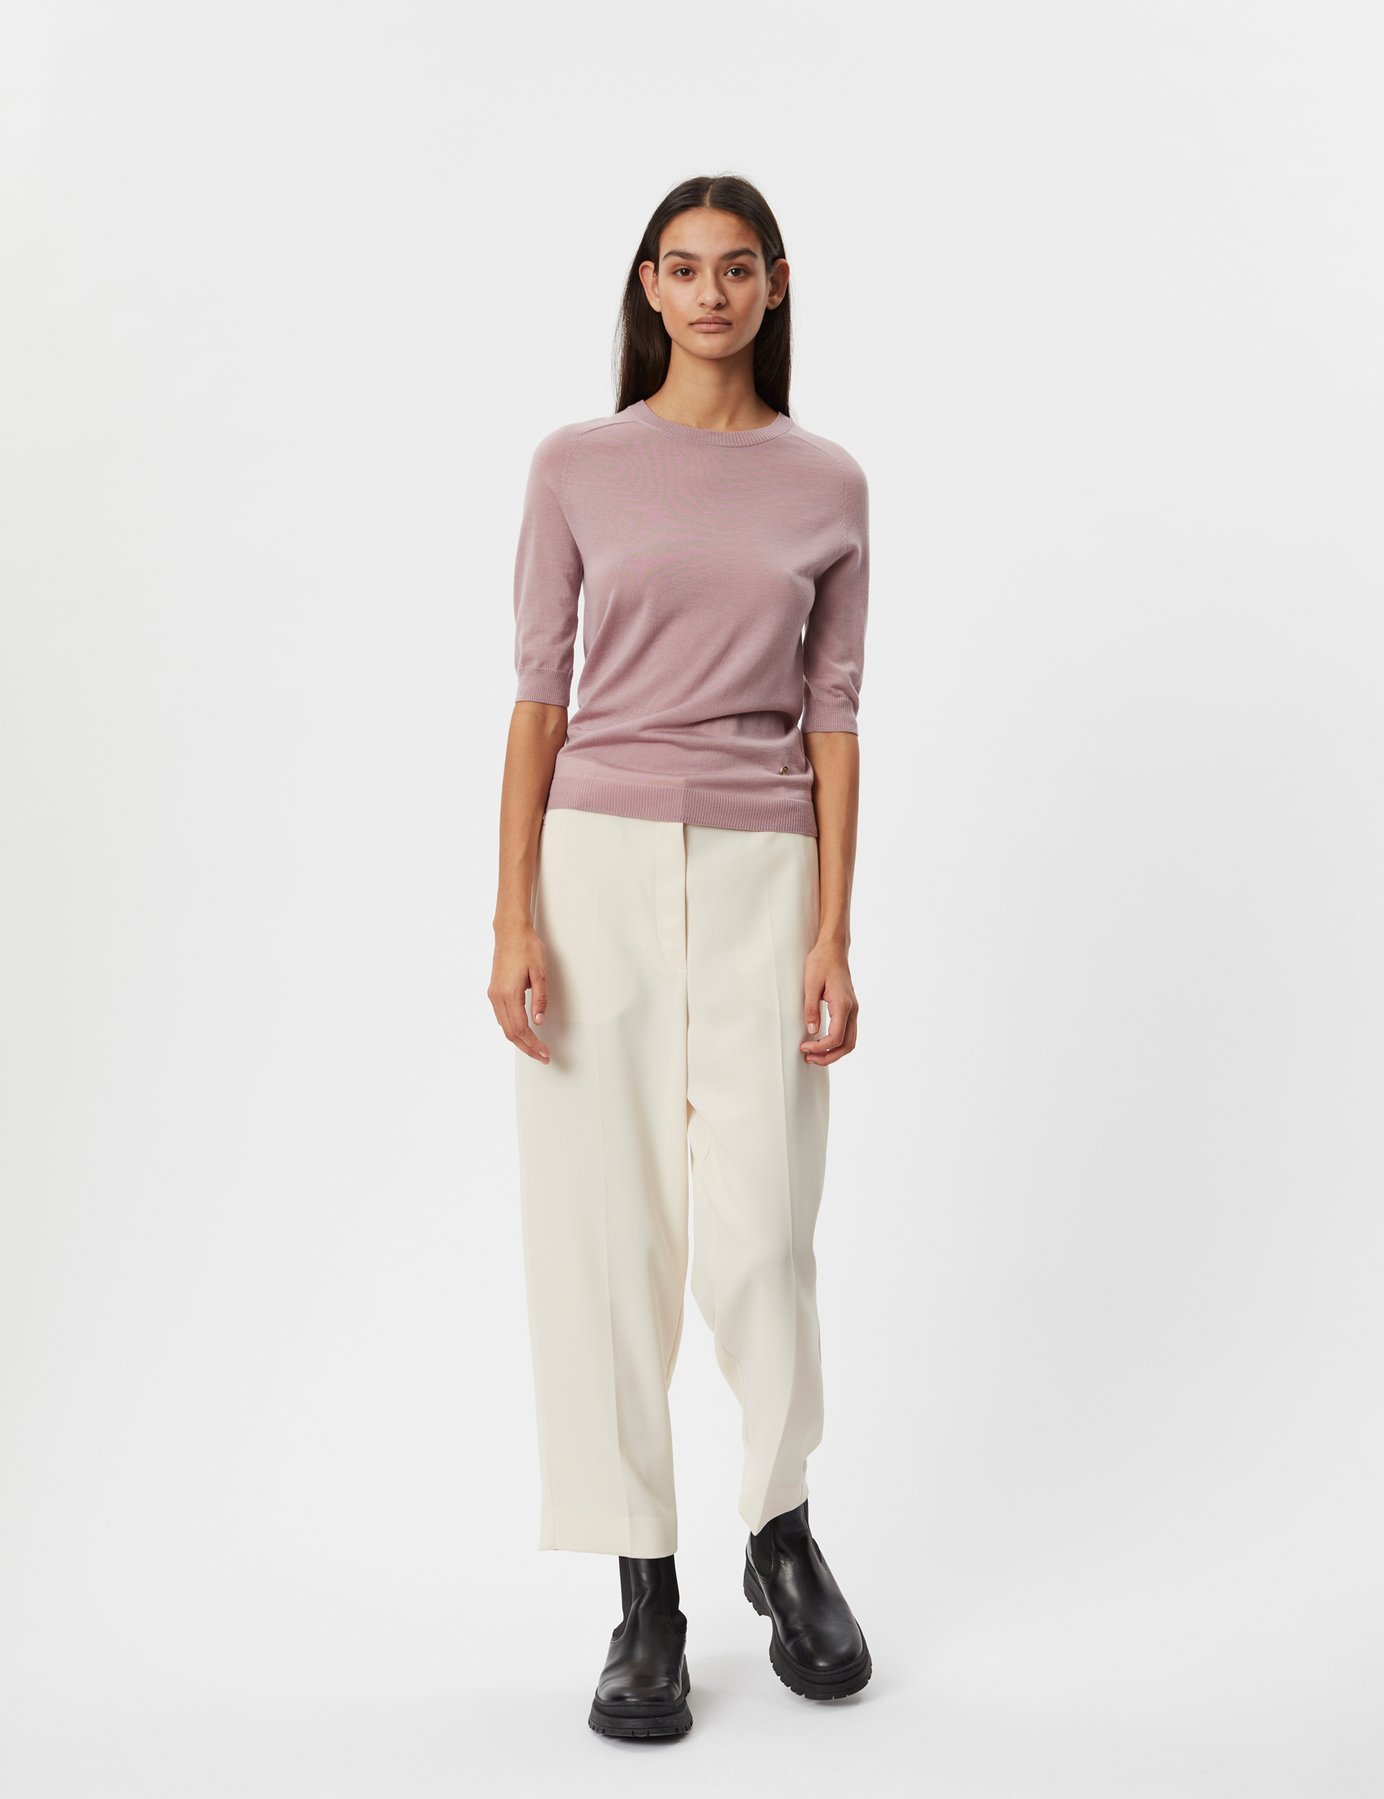 DAY_20Whitney_20Pullover-Pullover-1212310010-08040_20Wisteria_1384x1800